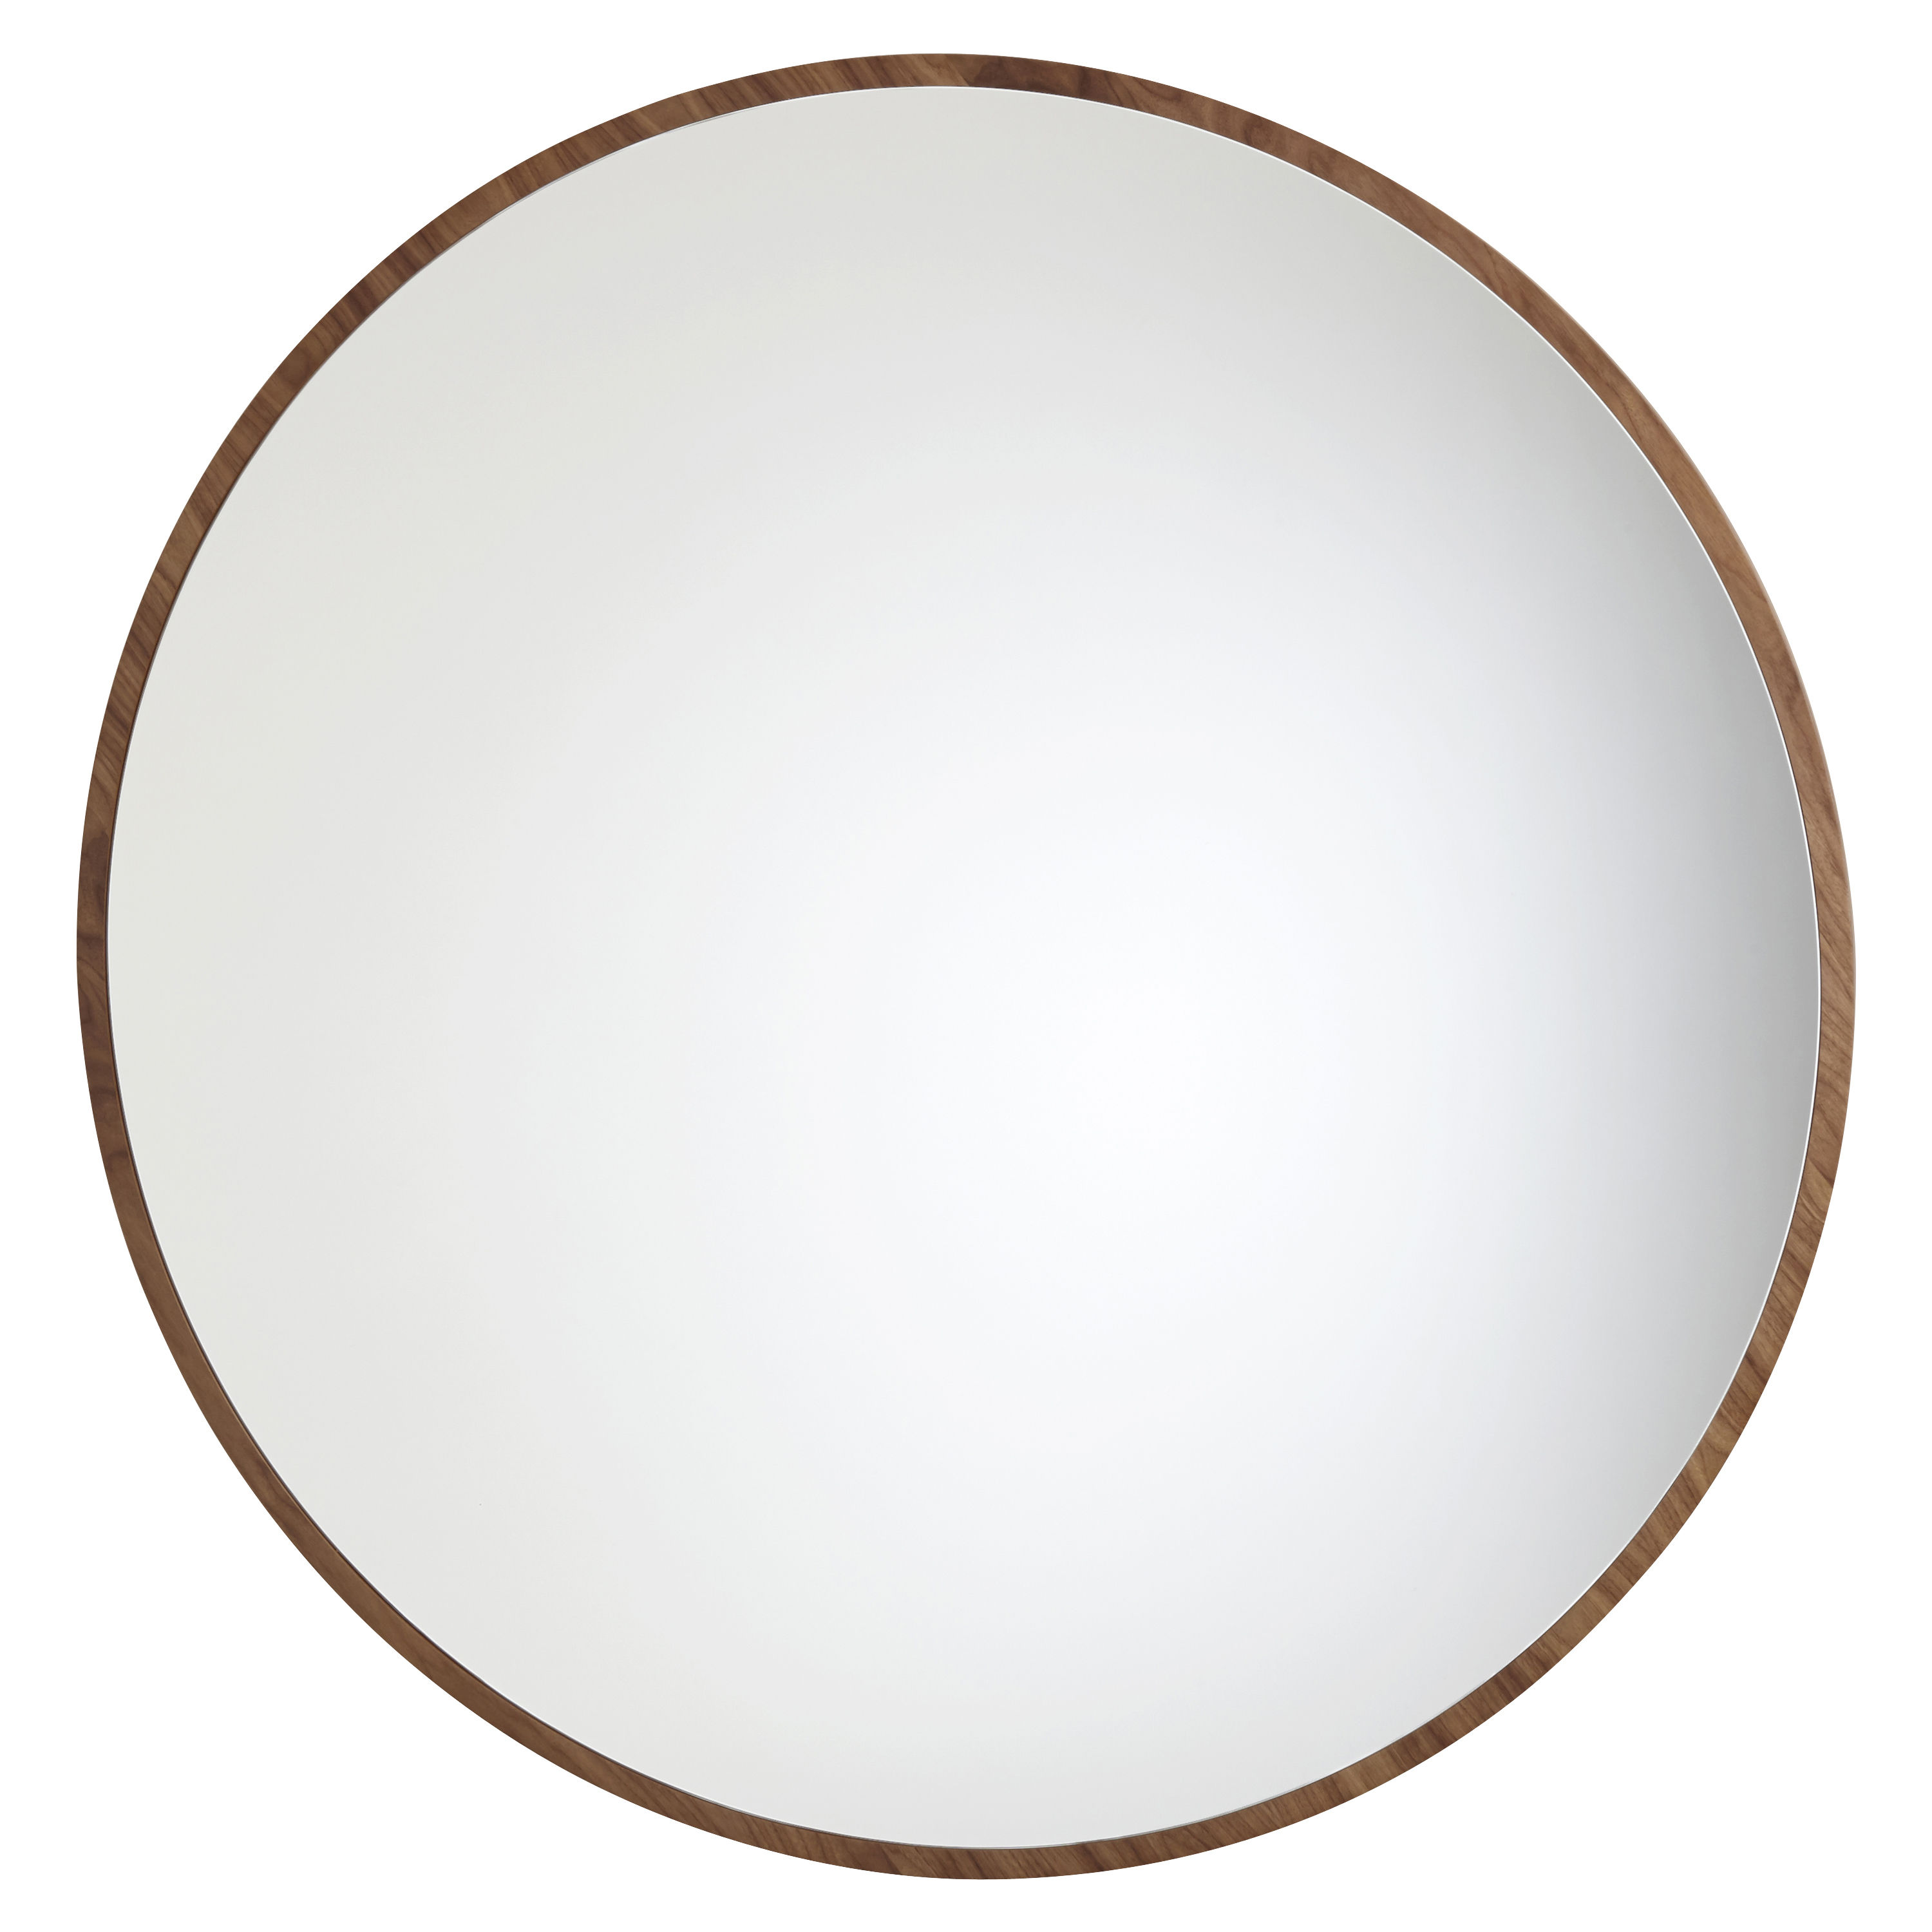 Bulle wall mirror large 120 cm oiled walnut by for Miroir 150 x 60